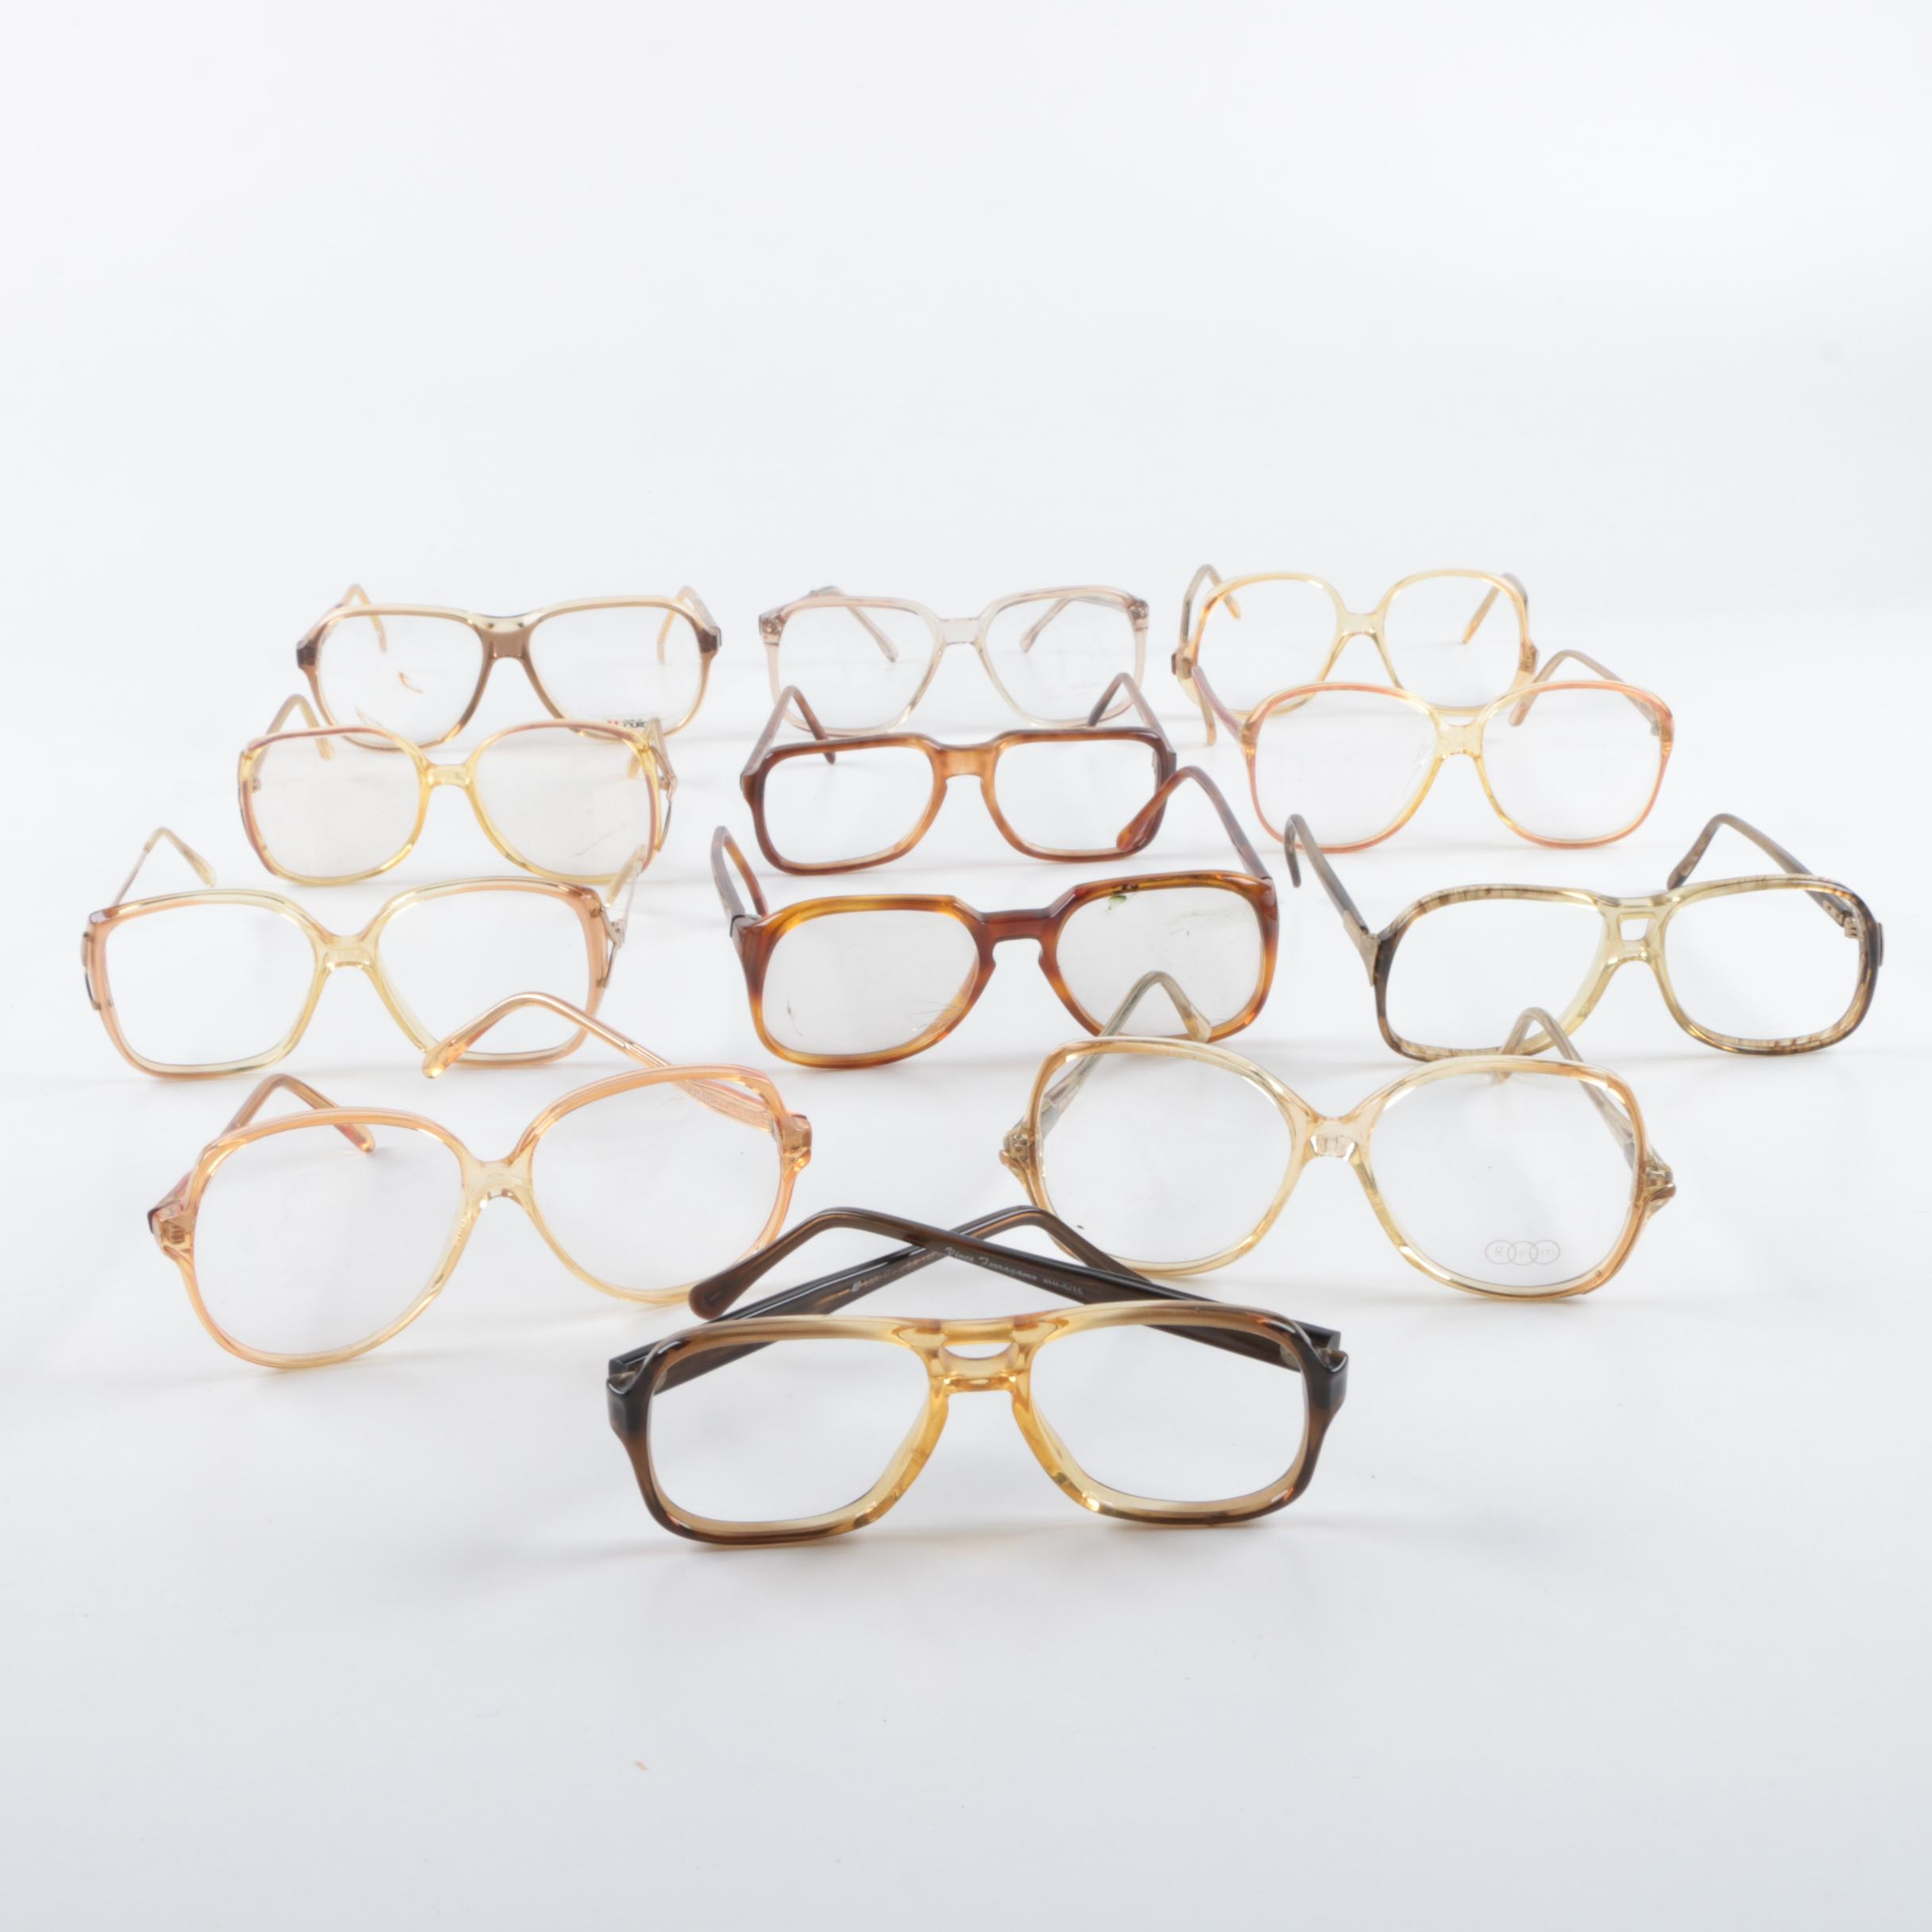 Vintage Eyeglass Frames Including Oscar de la Renta Art-Craft